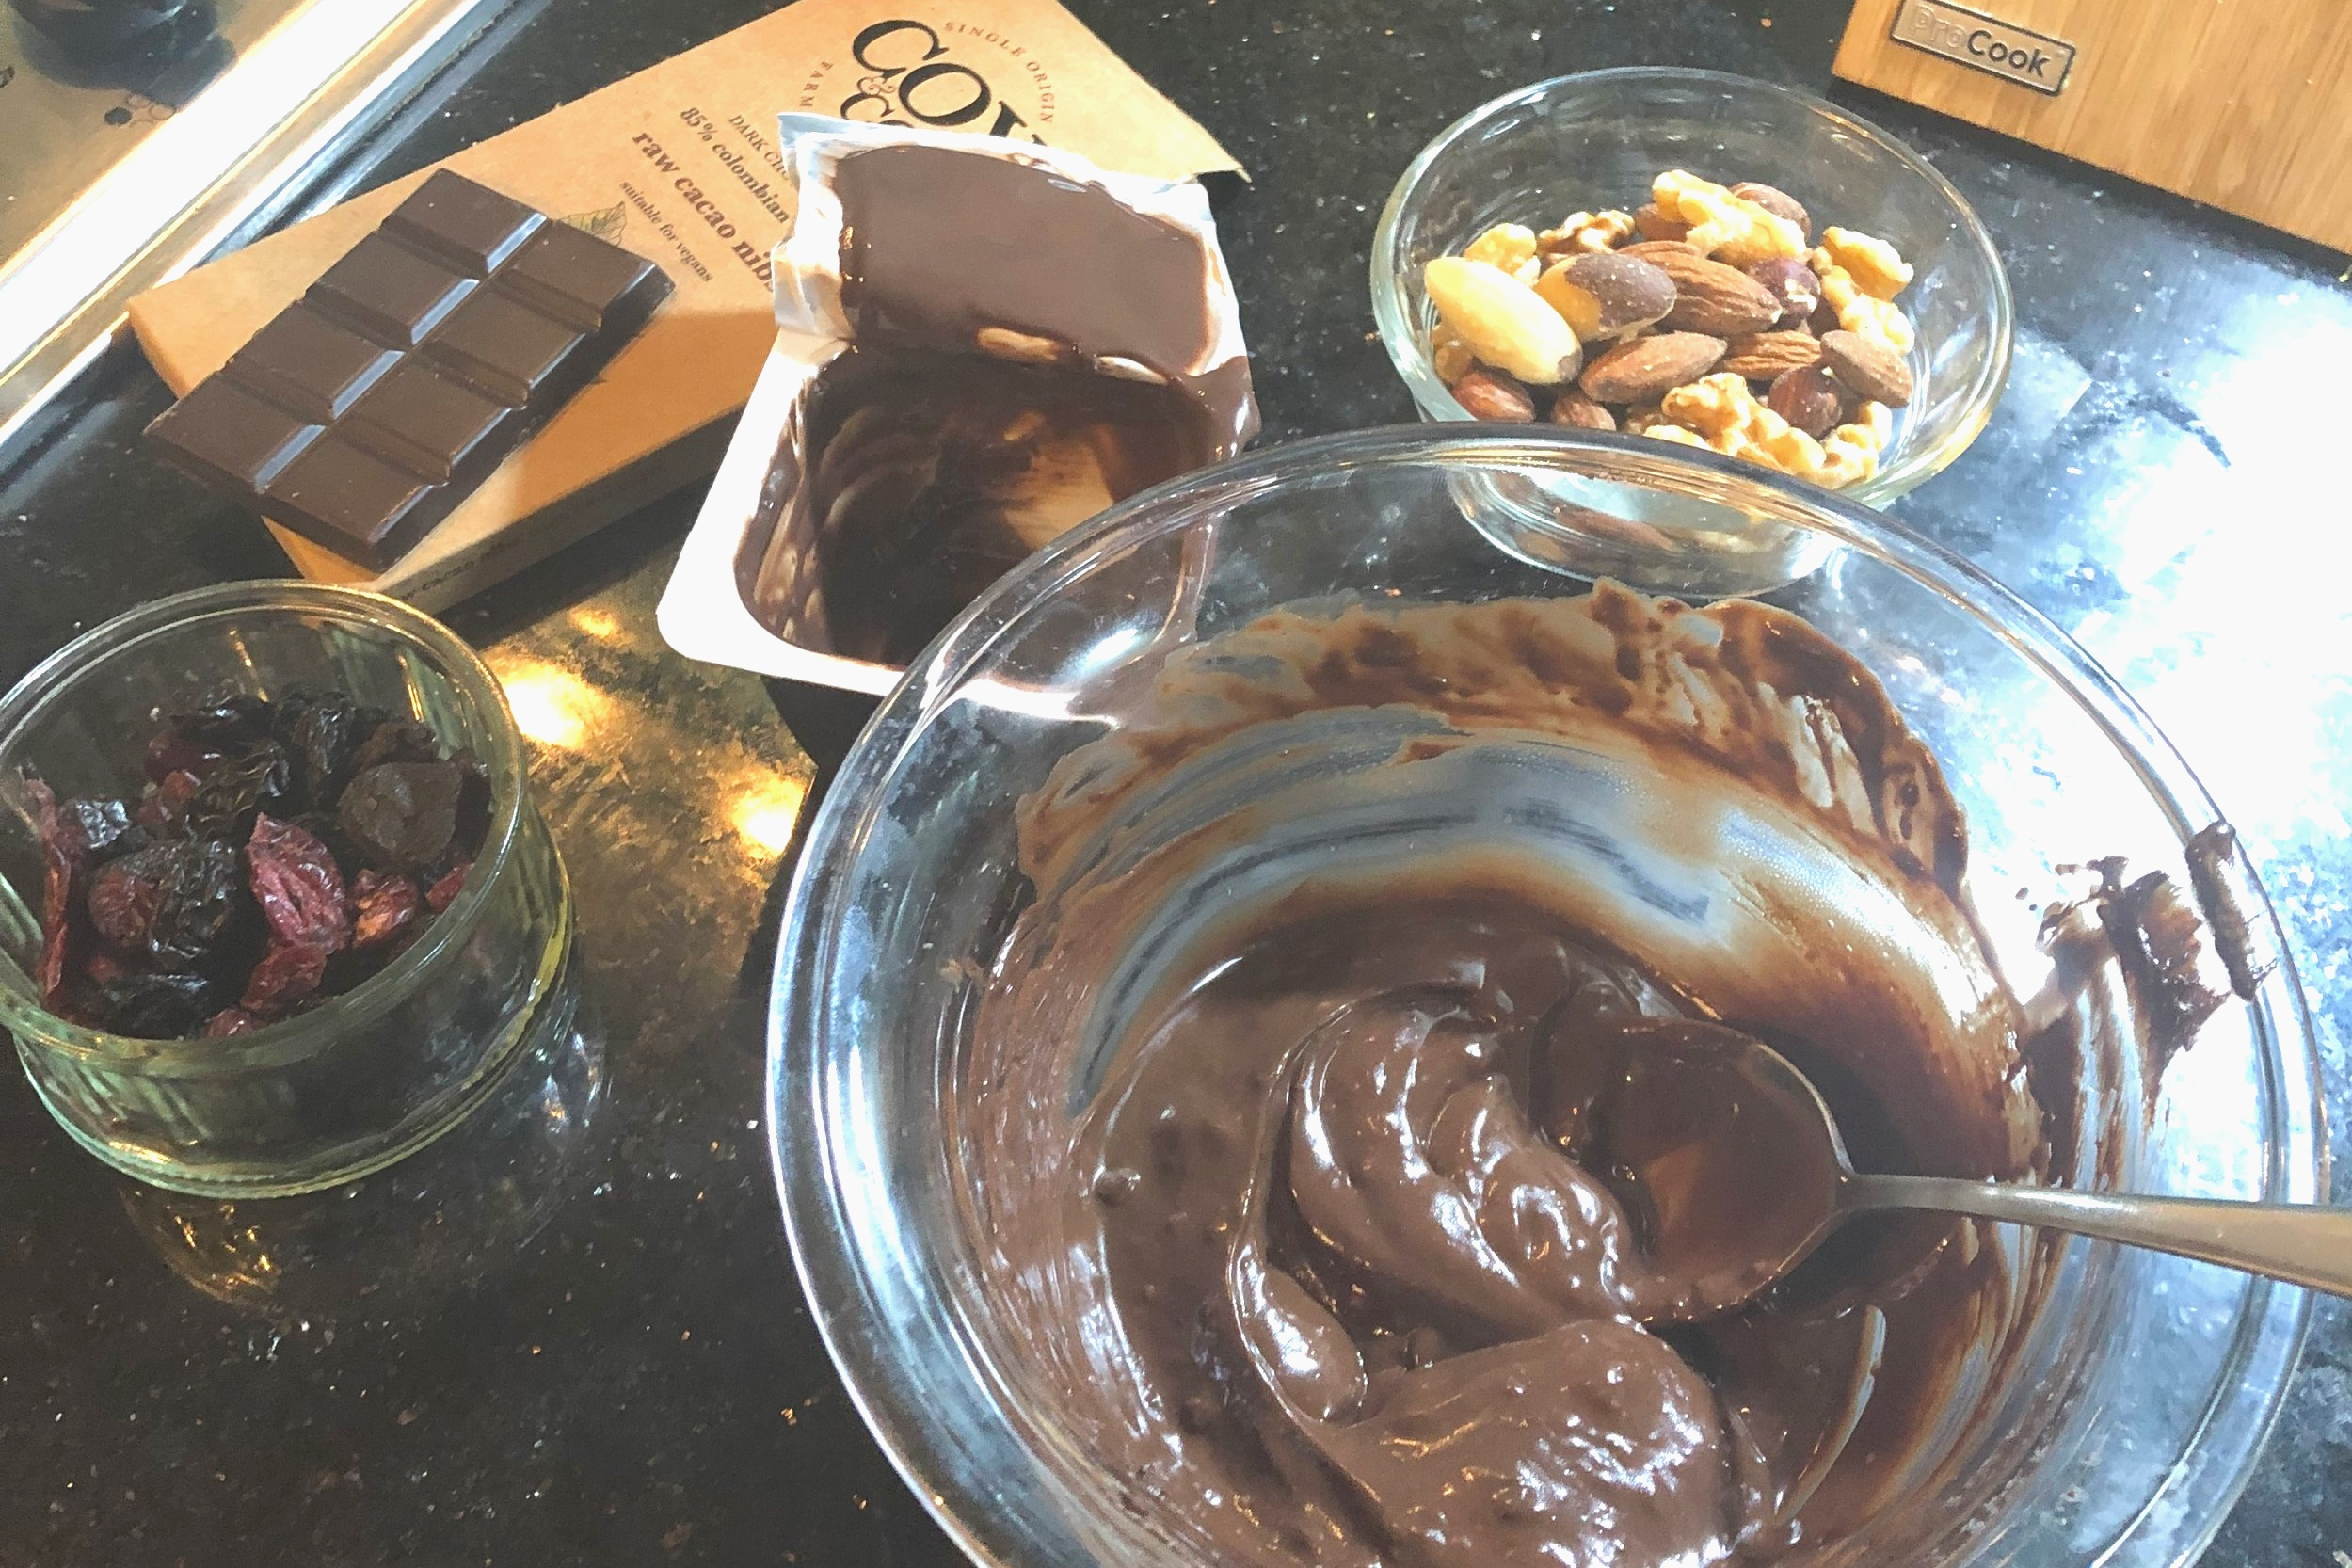 INGREDIENTS:  Cox&Co. 85% Cacao with Raw Cacao Nibs, 80g  Dark Chocolate Alpro Pot  Chopped up mixed nuts  Chopped up mixed dried berries  METHOD:  Melt one 80g bar of 85% Cacao with Cacao Nibs over boiling water  Once fully melted, still in the pan, mix in the dark chocolate Alpro pot  Teaspoon small puddles on to baking paper  Sprinkle your chopped nuts and fruit on top  Put in the freezer for 1hr to set  Take out of the freezer 15mins before serving and ENJOY!